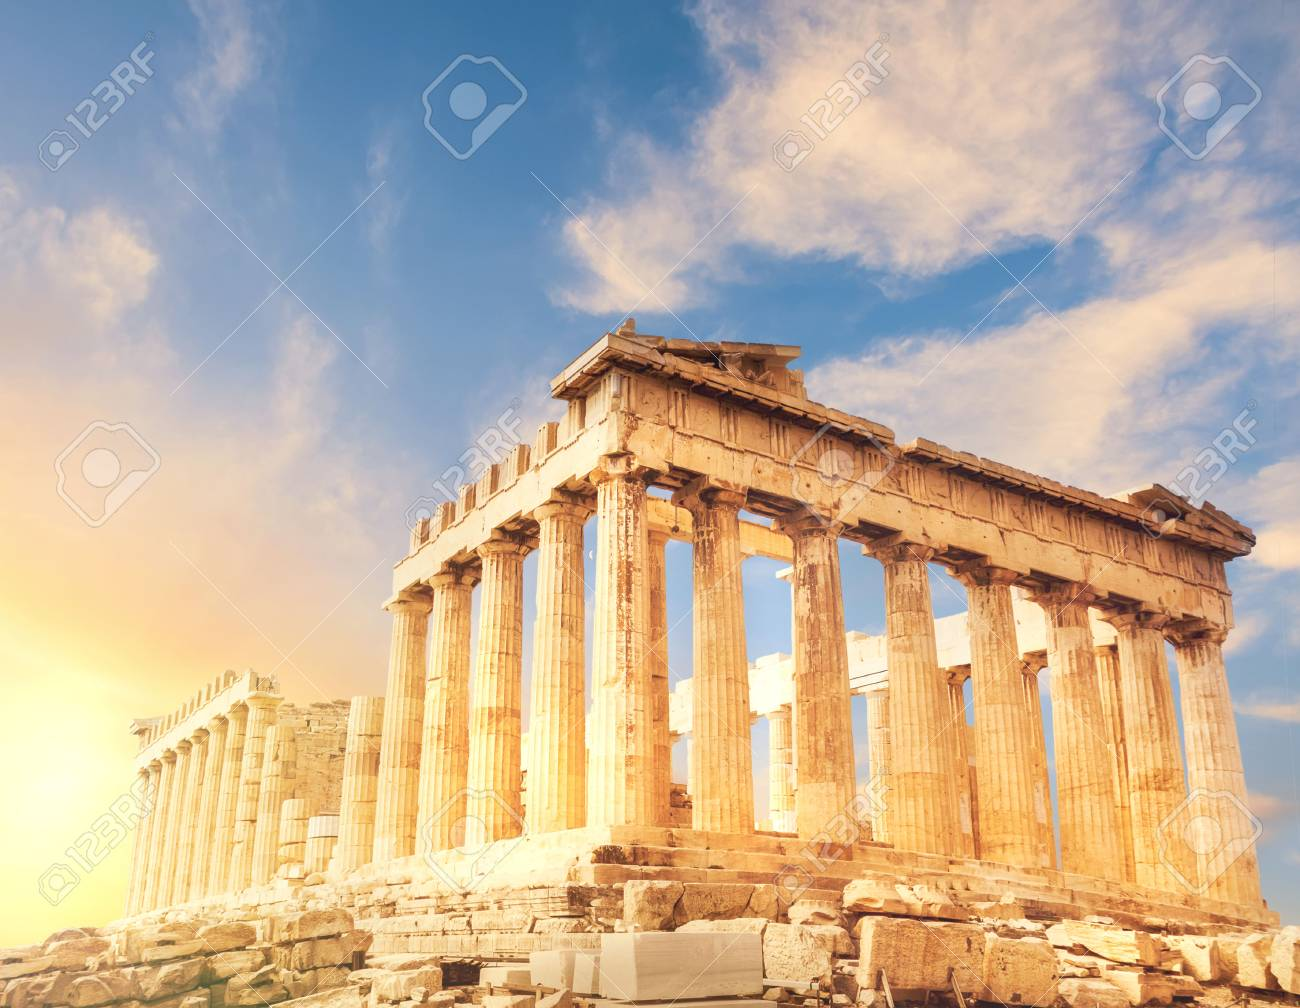 Acropolis in Athens, Greece. Parthenon temple on a sunset. This image is toned. - 73251991